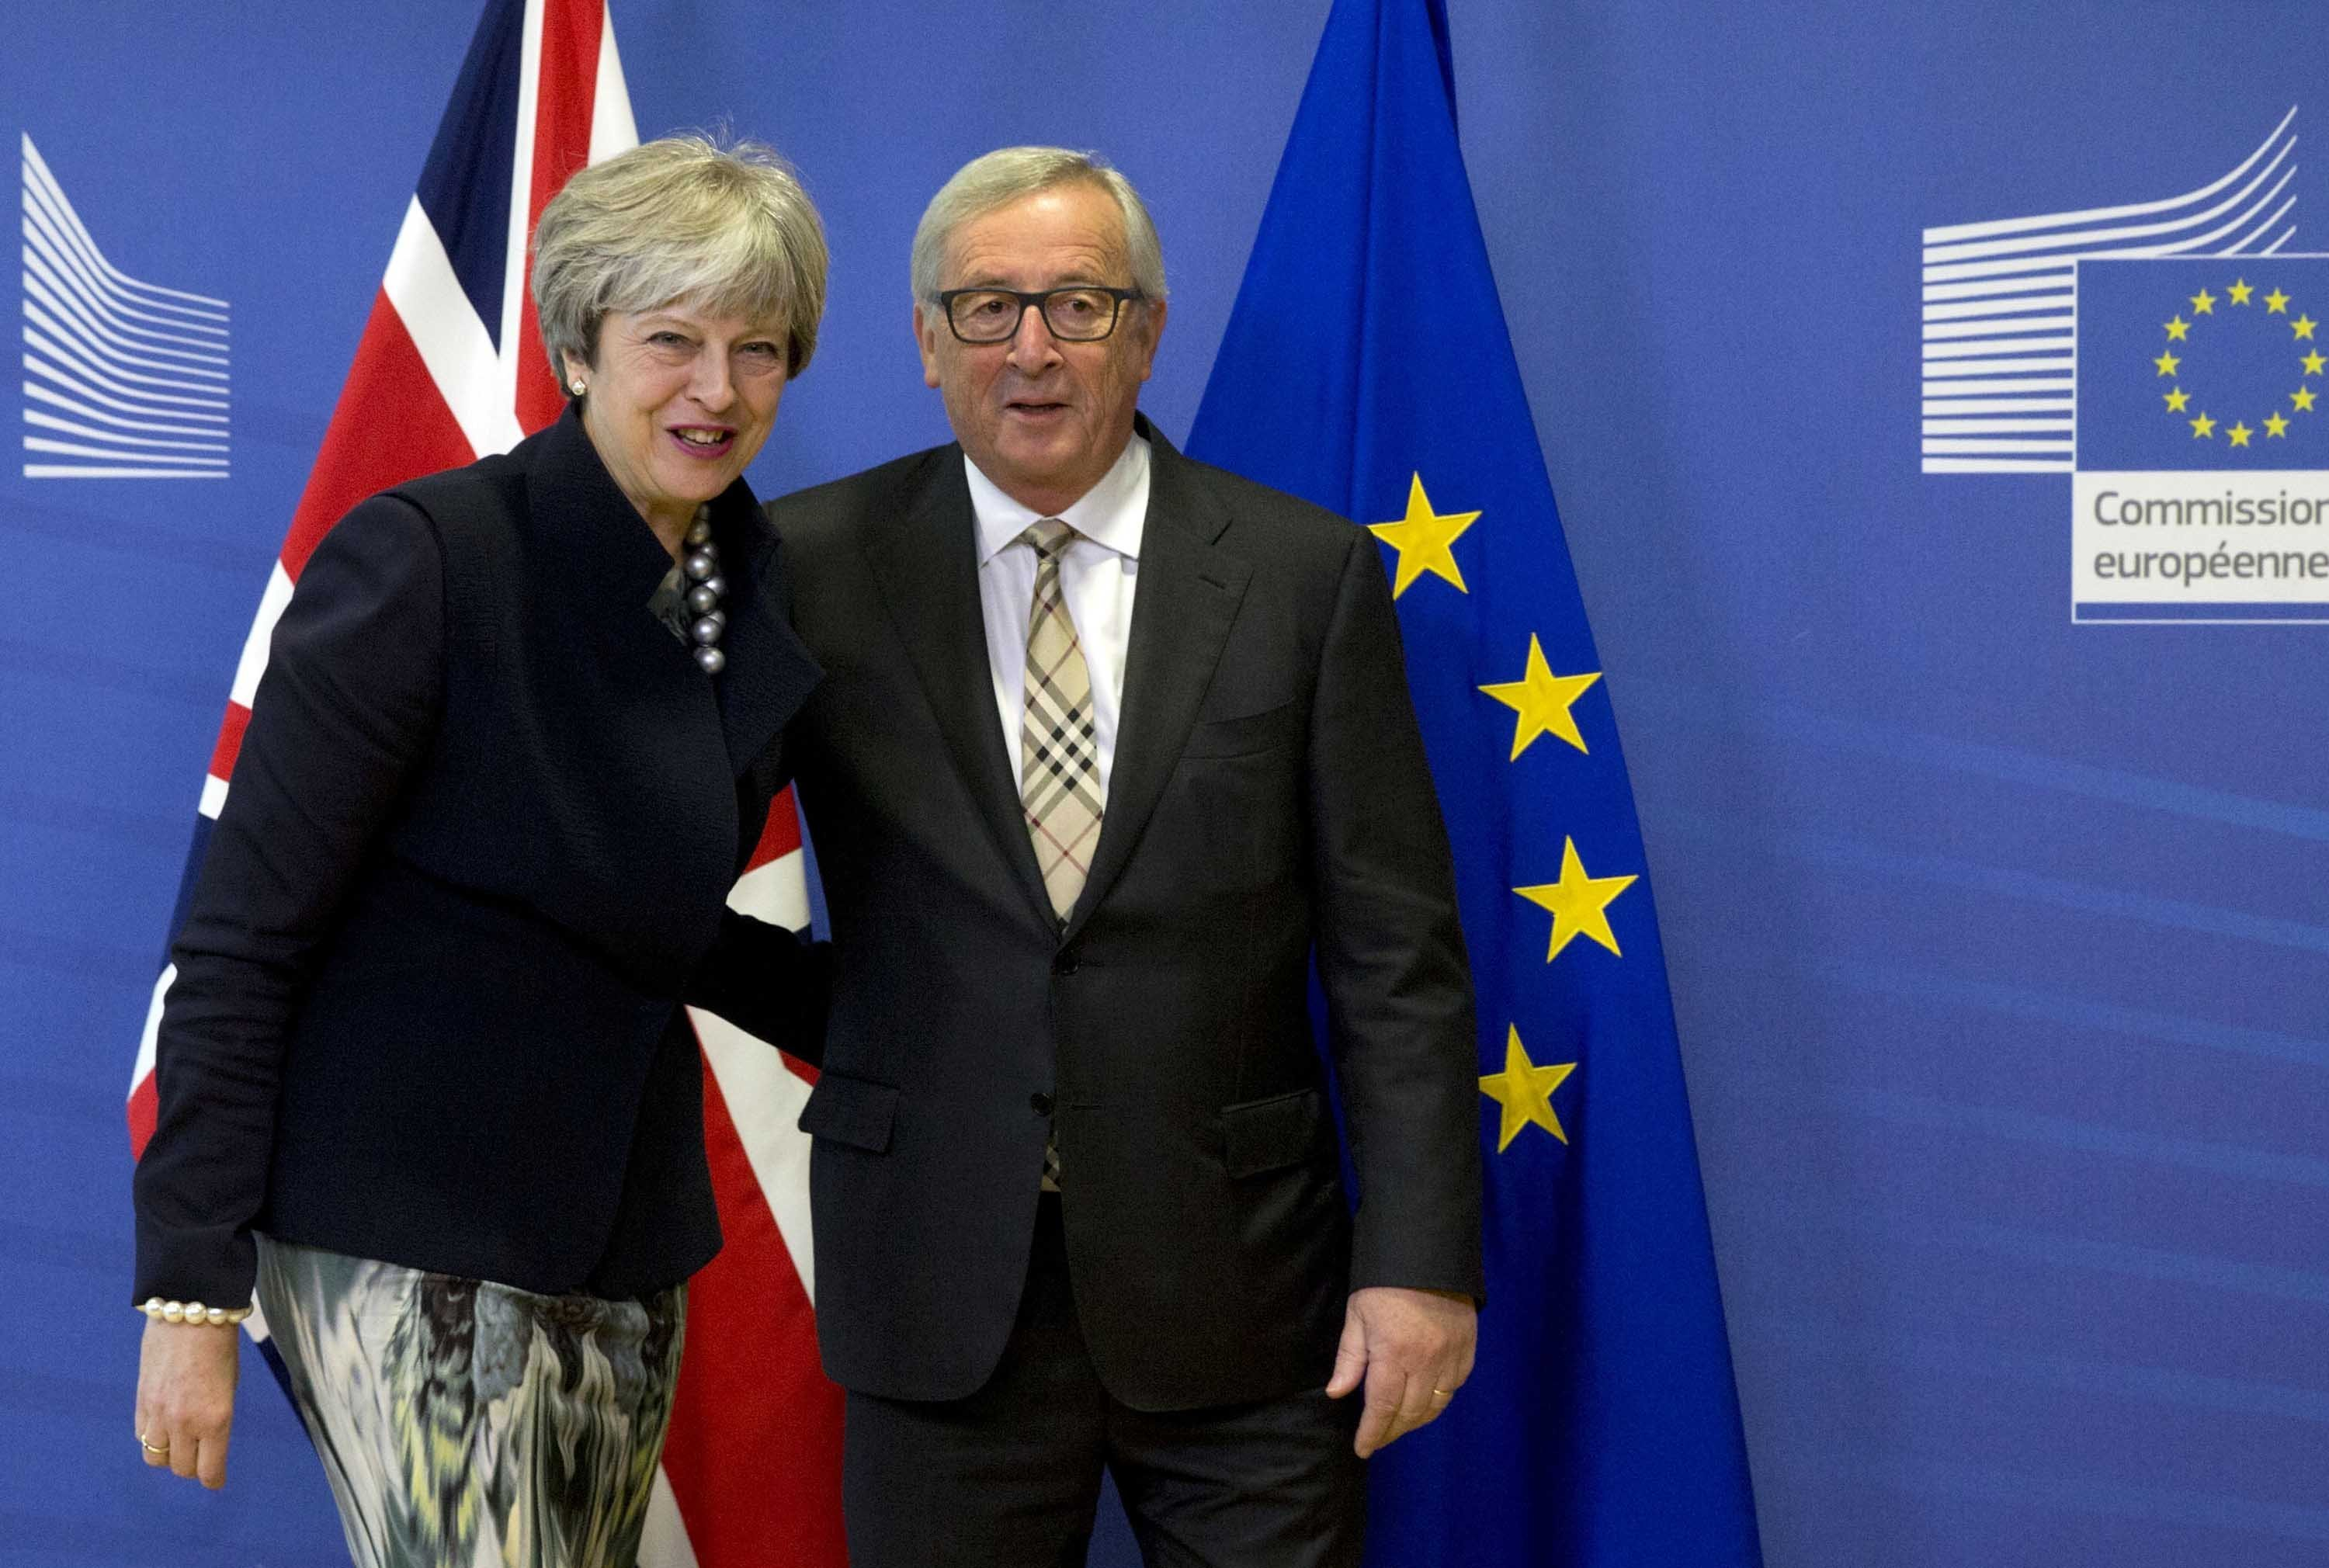 **This image is for use with this specific article only.**  European Commission President Jean-Claude Juncker greets British PM Theresa May prior to a crucial Brexit meeting at EU headquarters in Brussels on Monday, December 4, 2017.